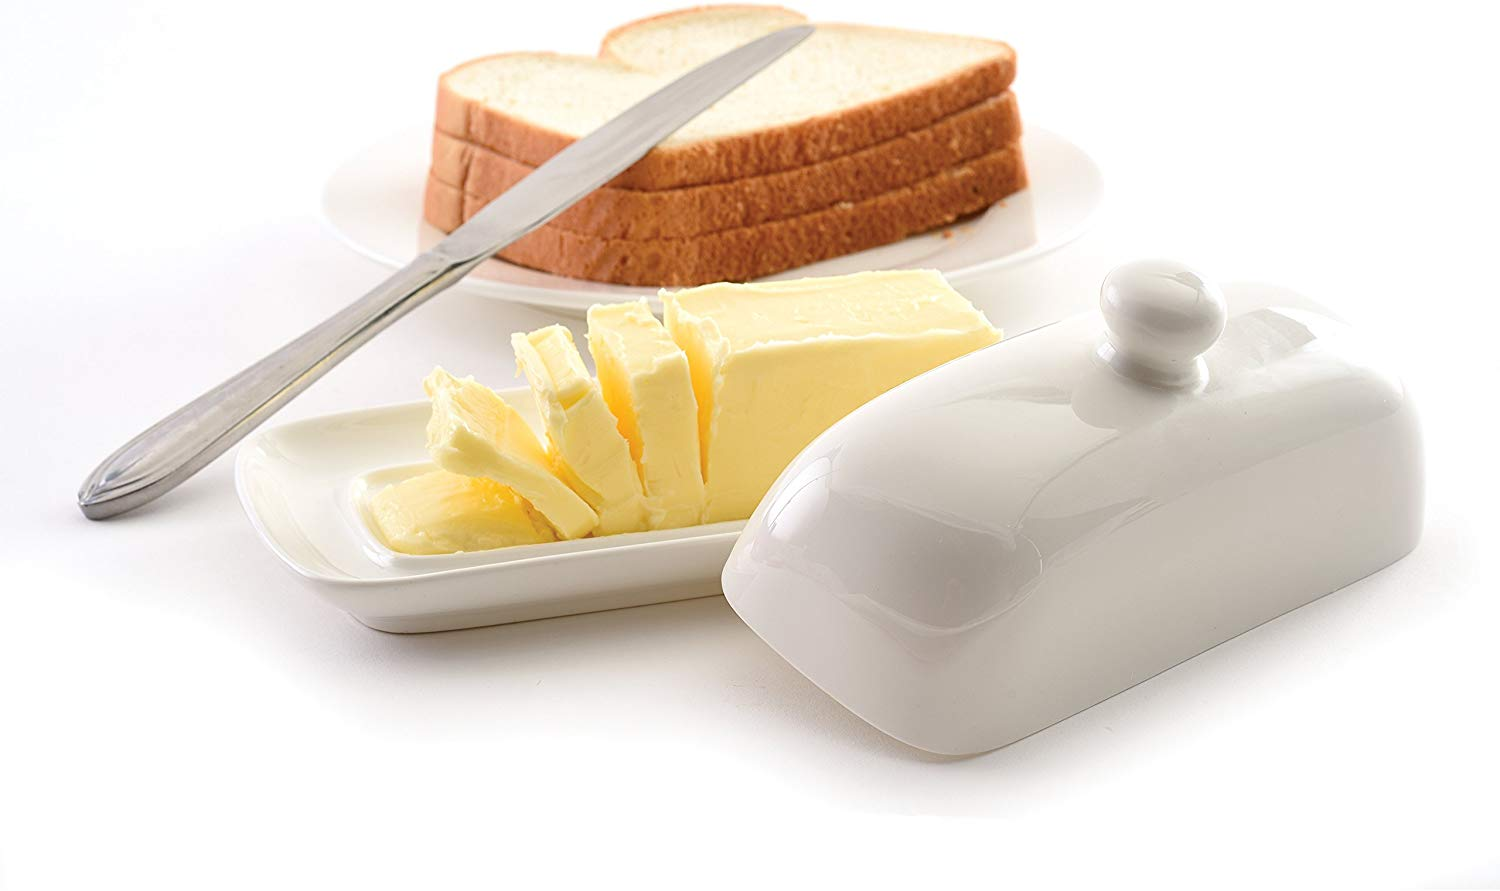 A butter dish containing a sliced stick of butter with a plate of bread in the background